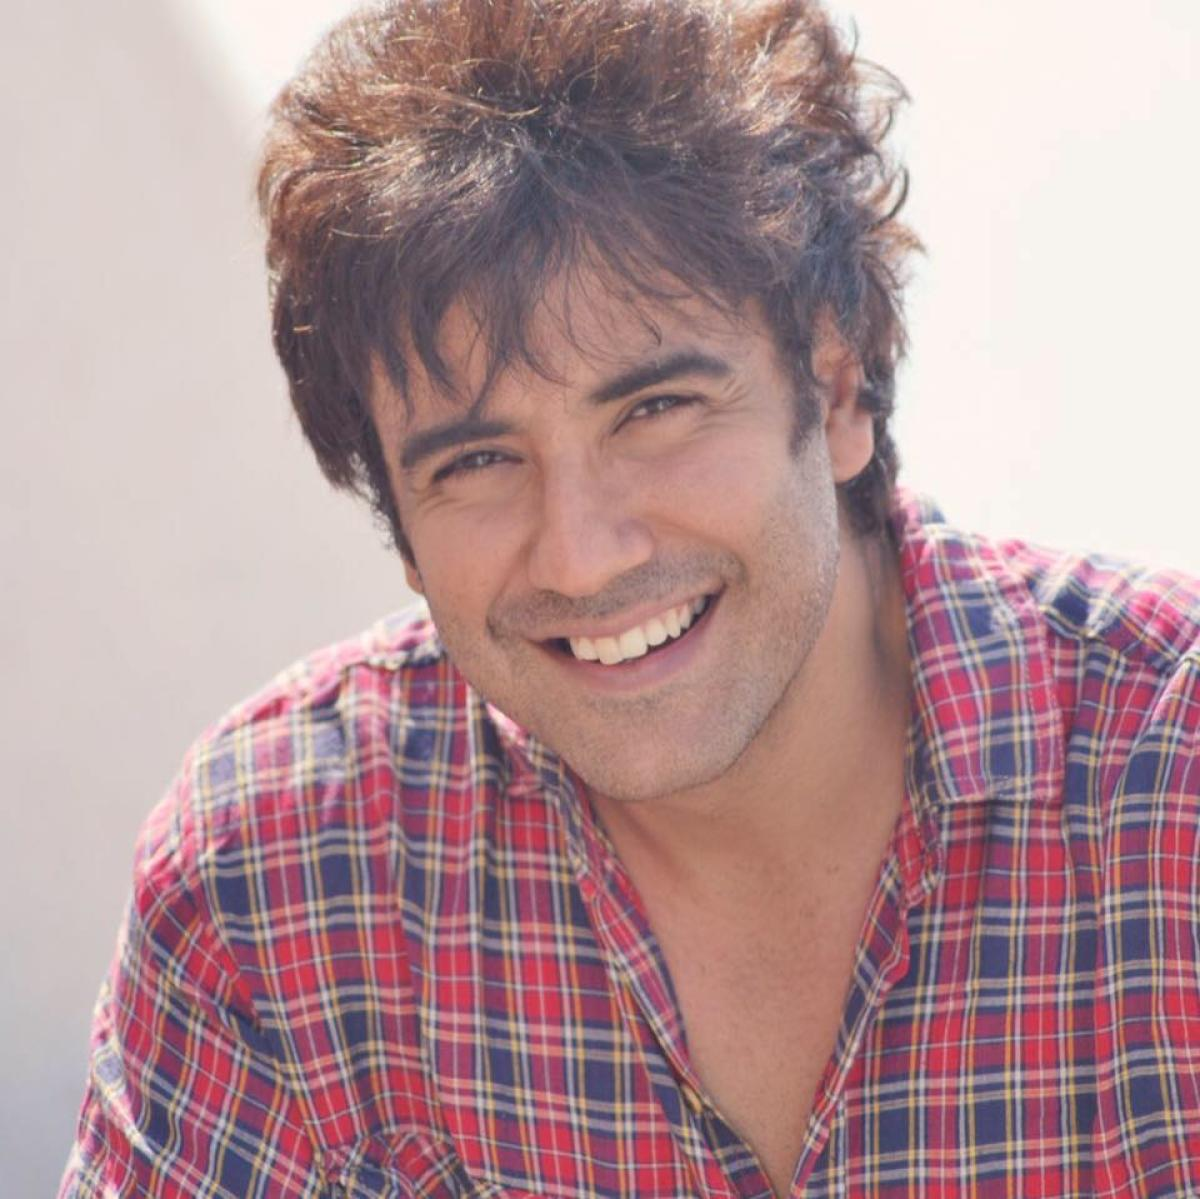 Karan Oberoi Rape Case: Actor's Sister Files Complaint Against Accuser for Practising Witchcraft